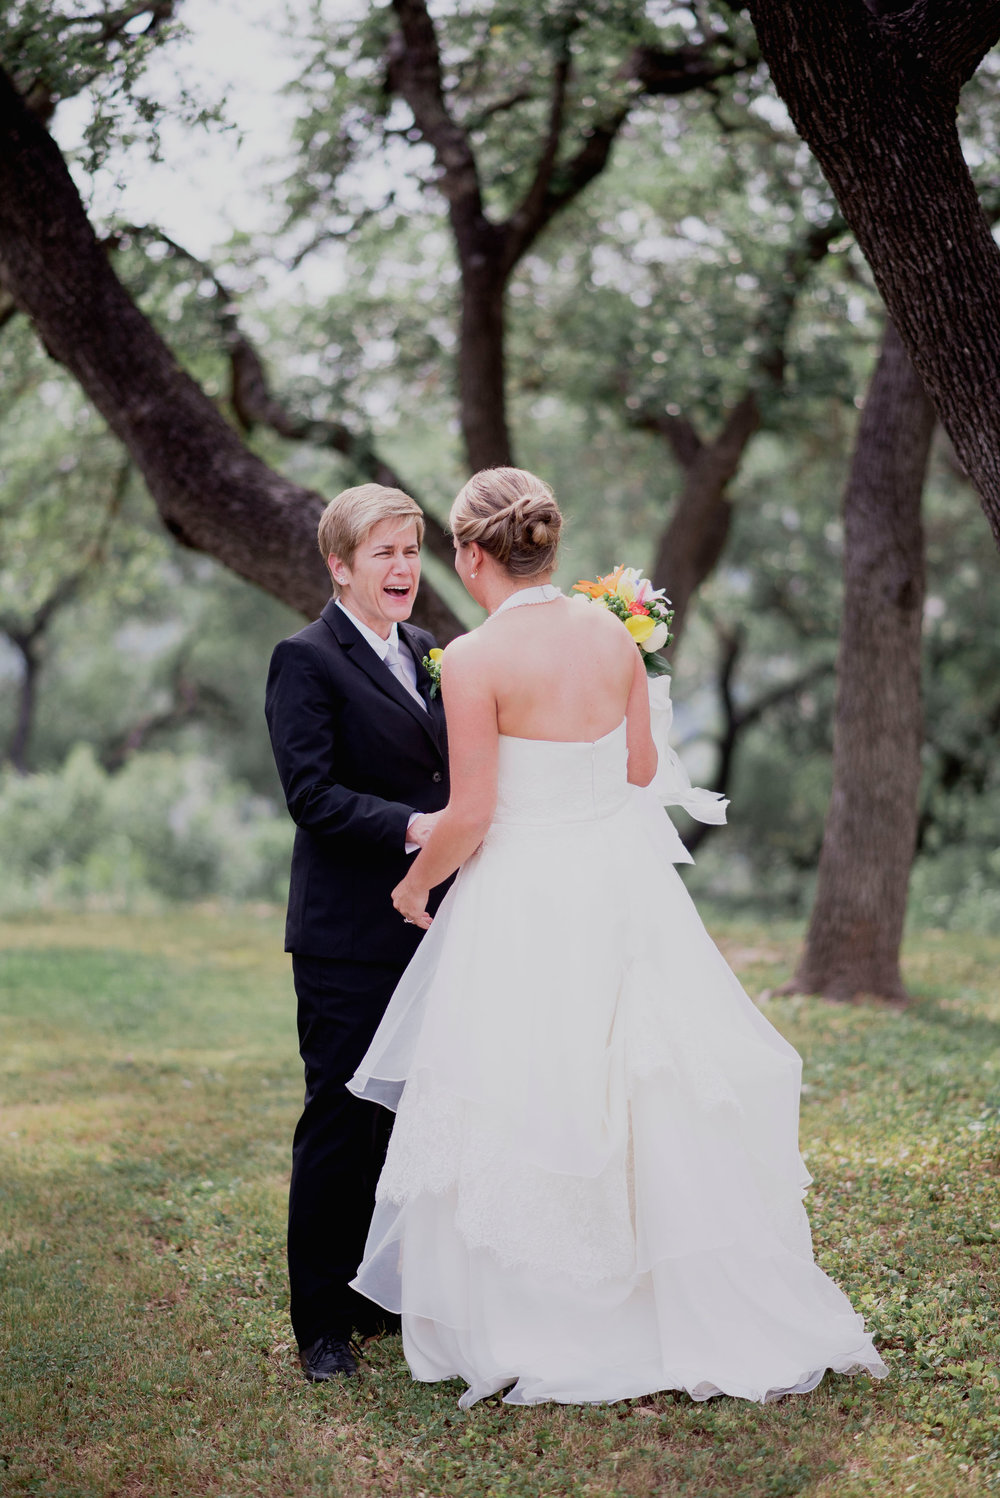 Austin Wedding Photographer Hacienda Del Lago LBGT Elegant016.jpg